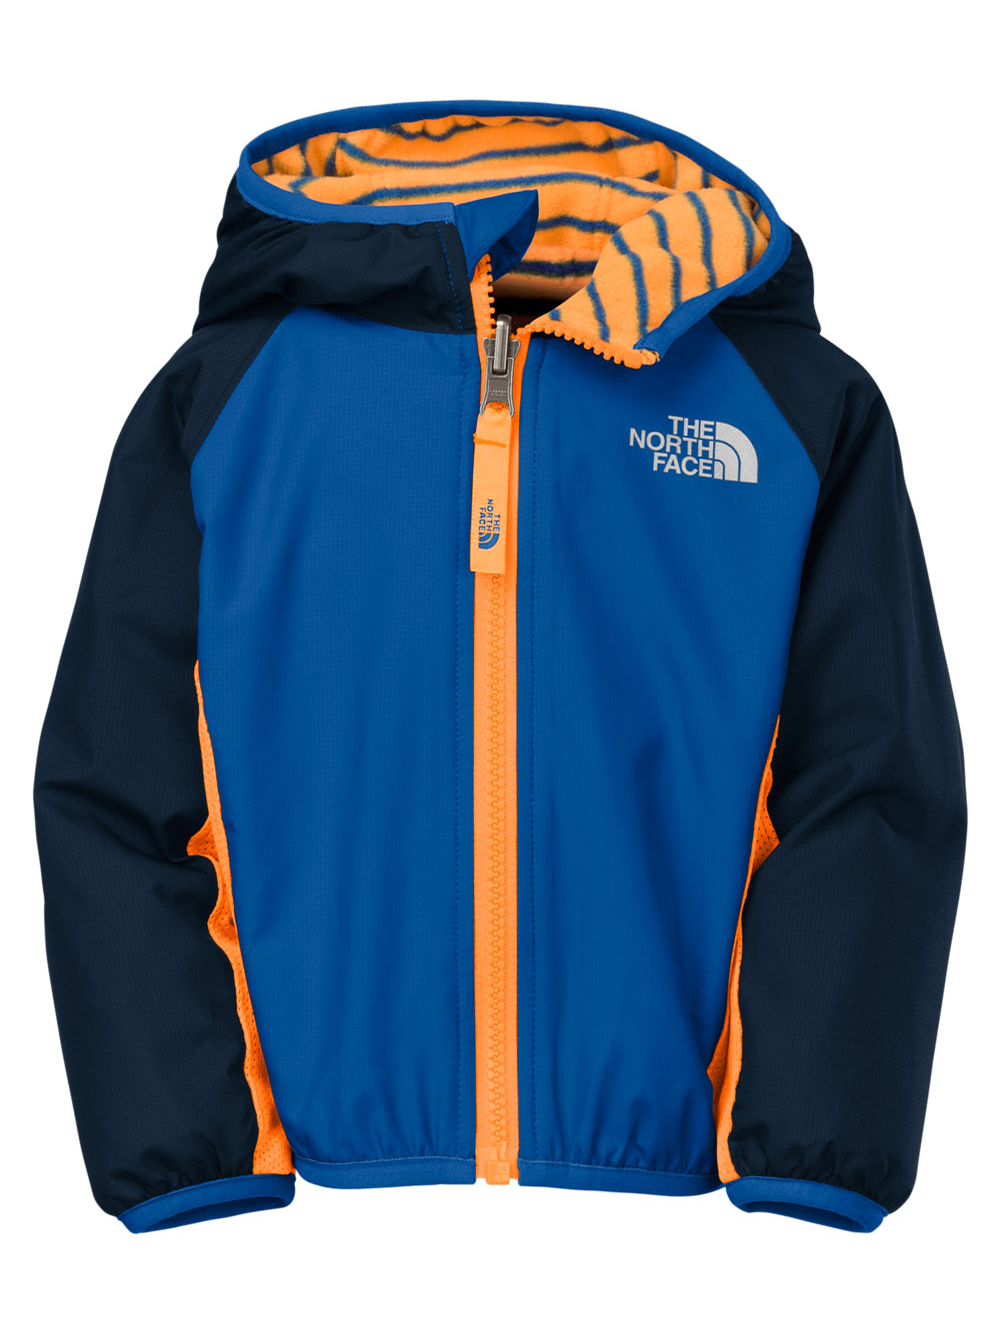 The North Face Baby Boys' Reversible Grizzly Peak Wind Jacket - monster blue, 6 - 12 months